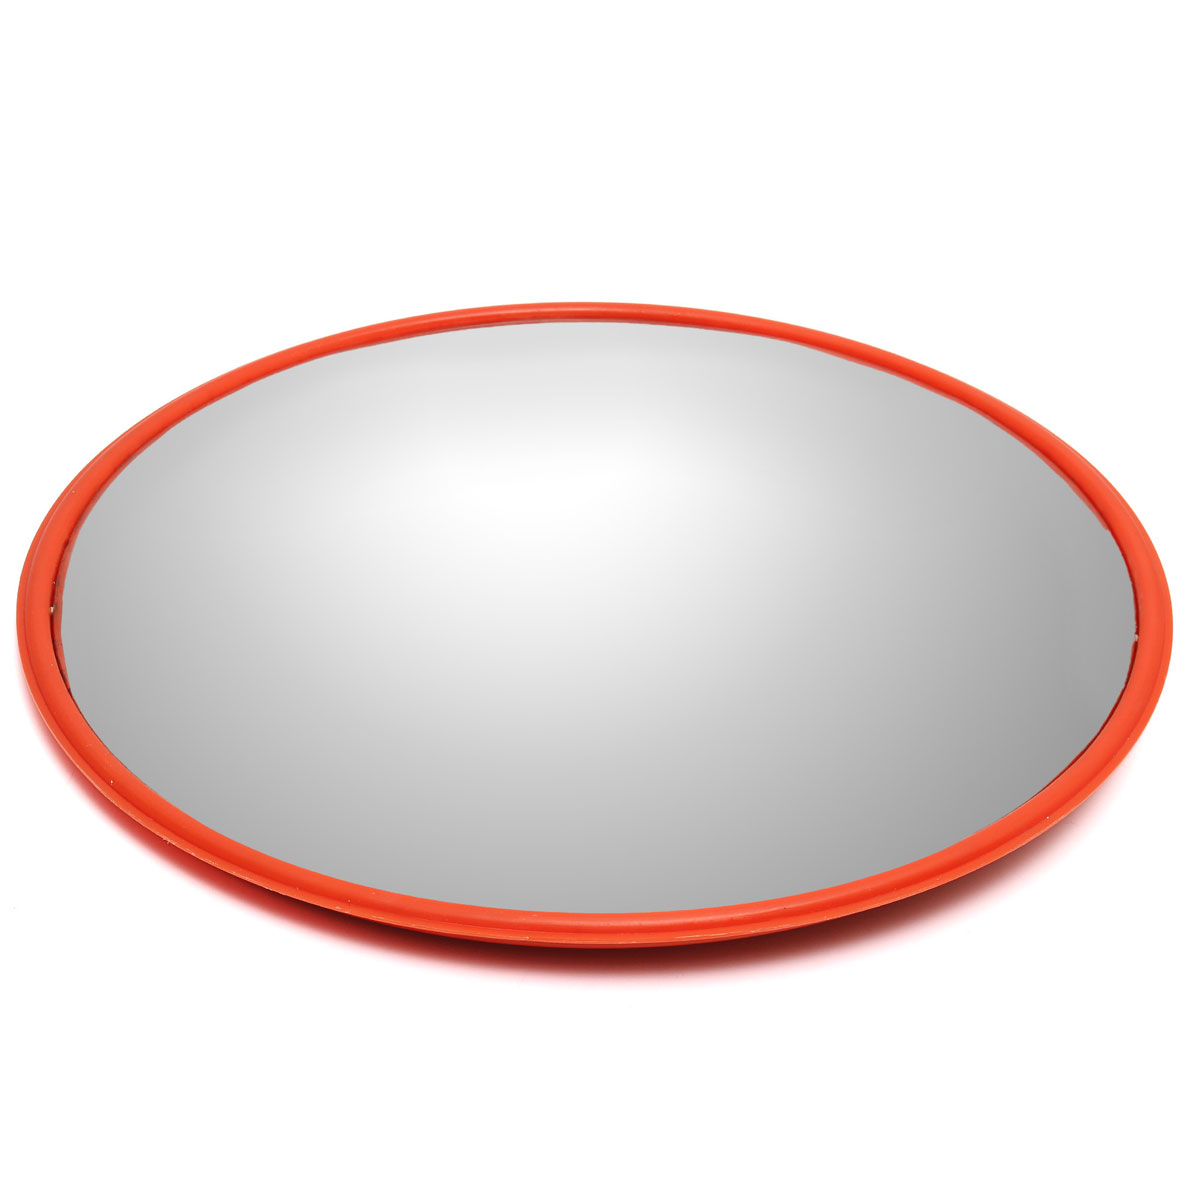 NEW Safurance 60 cm Wide Angle Security Curved Convex Road Mirror Traffic Driveway Roadway Safety Traffic SignalNEW Safurance 60 cm Wide Angle Security Curved Convex Road Mirror Traffic Driveway Roadway Safety Traffic Signal